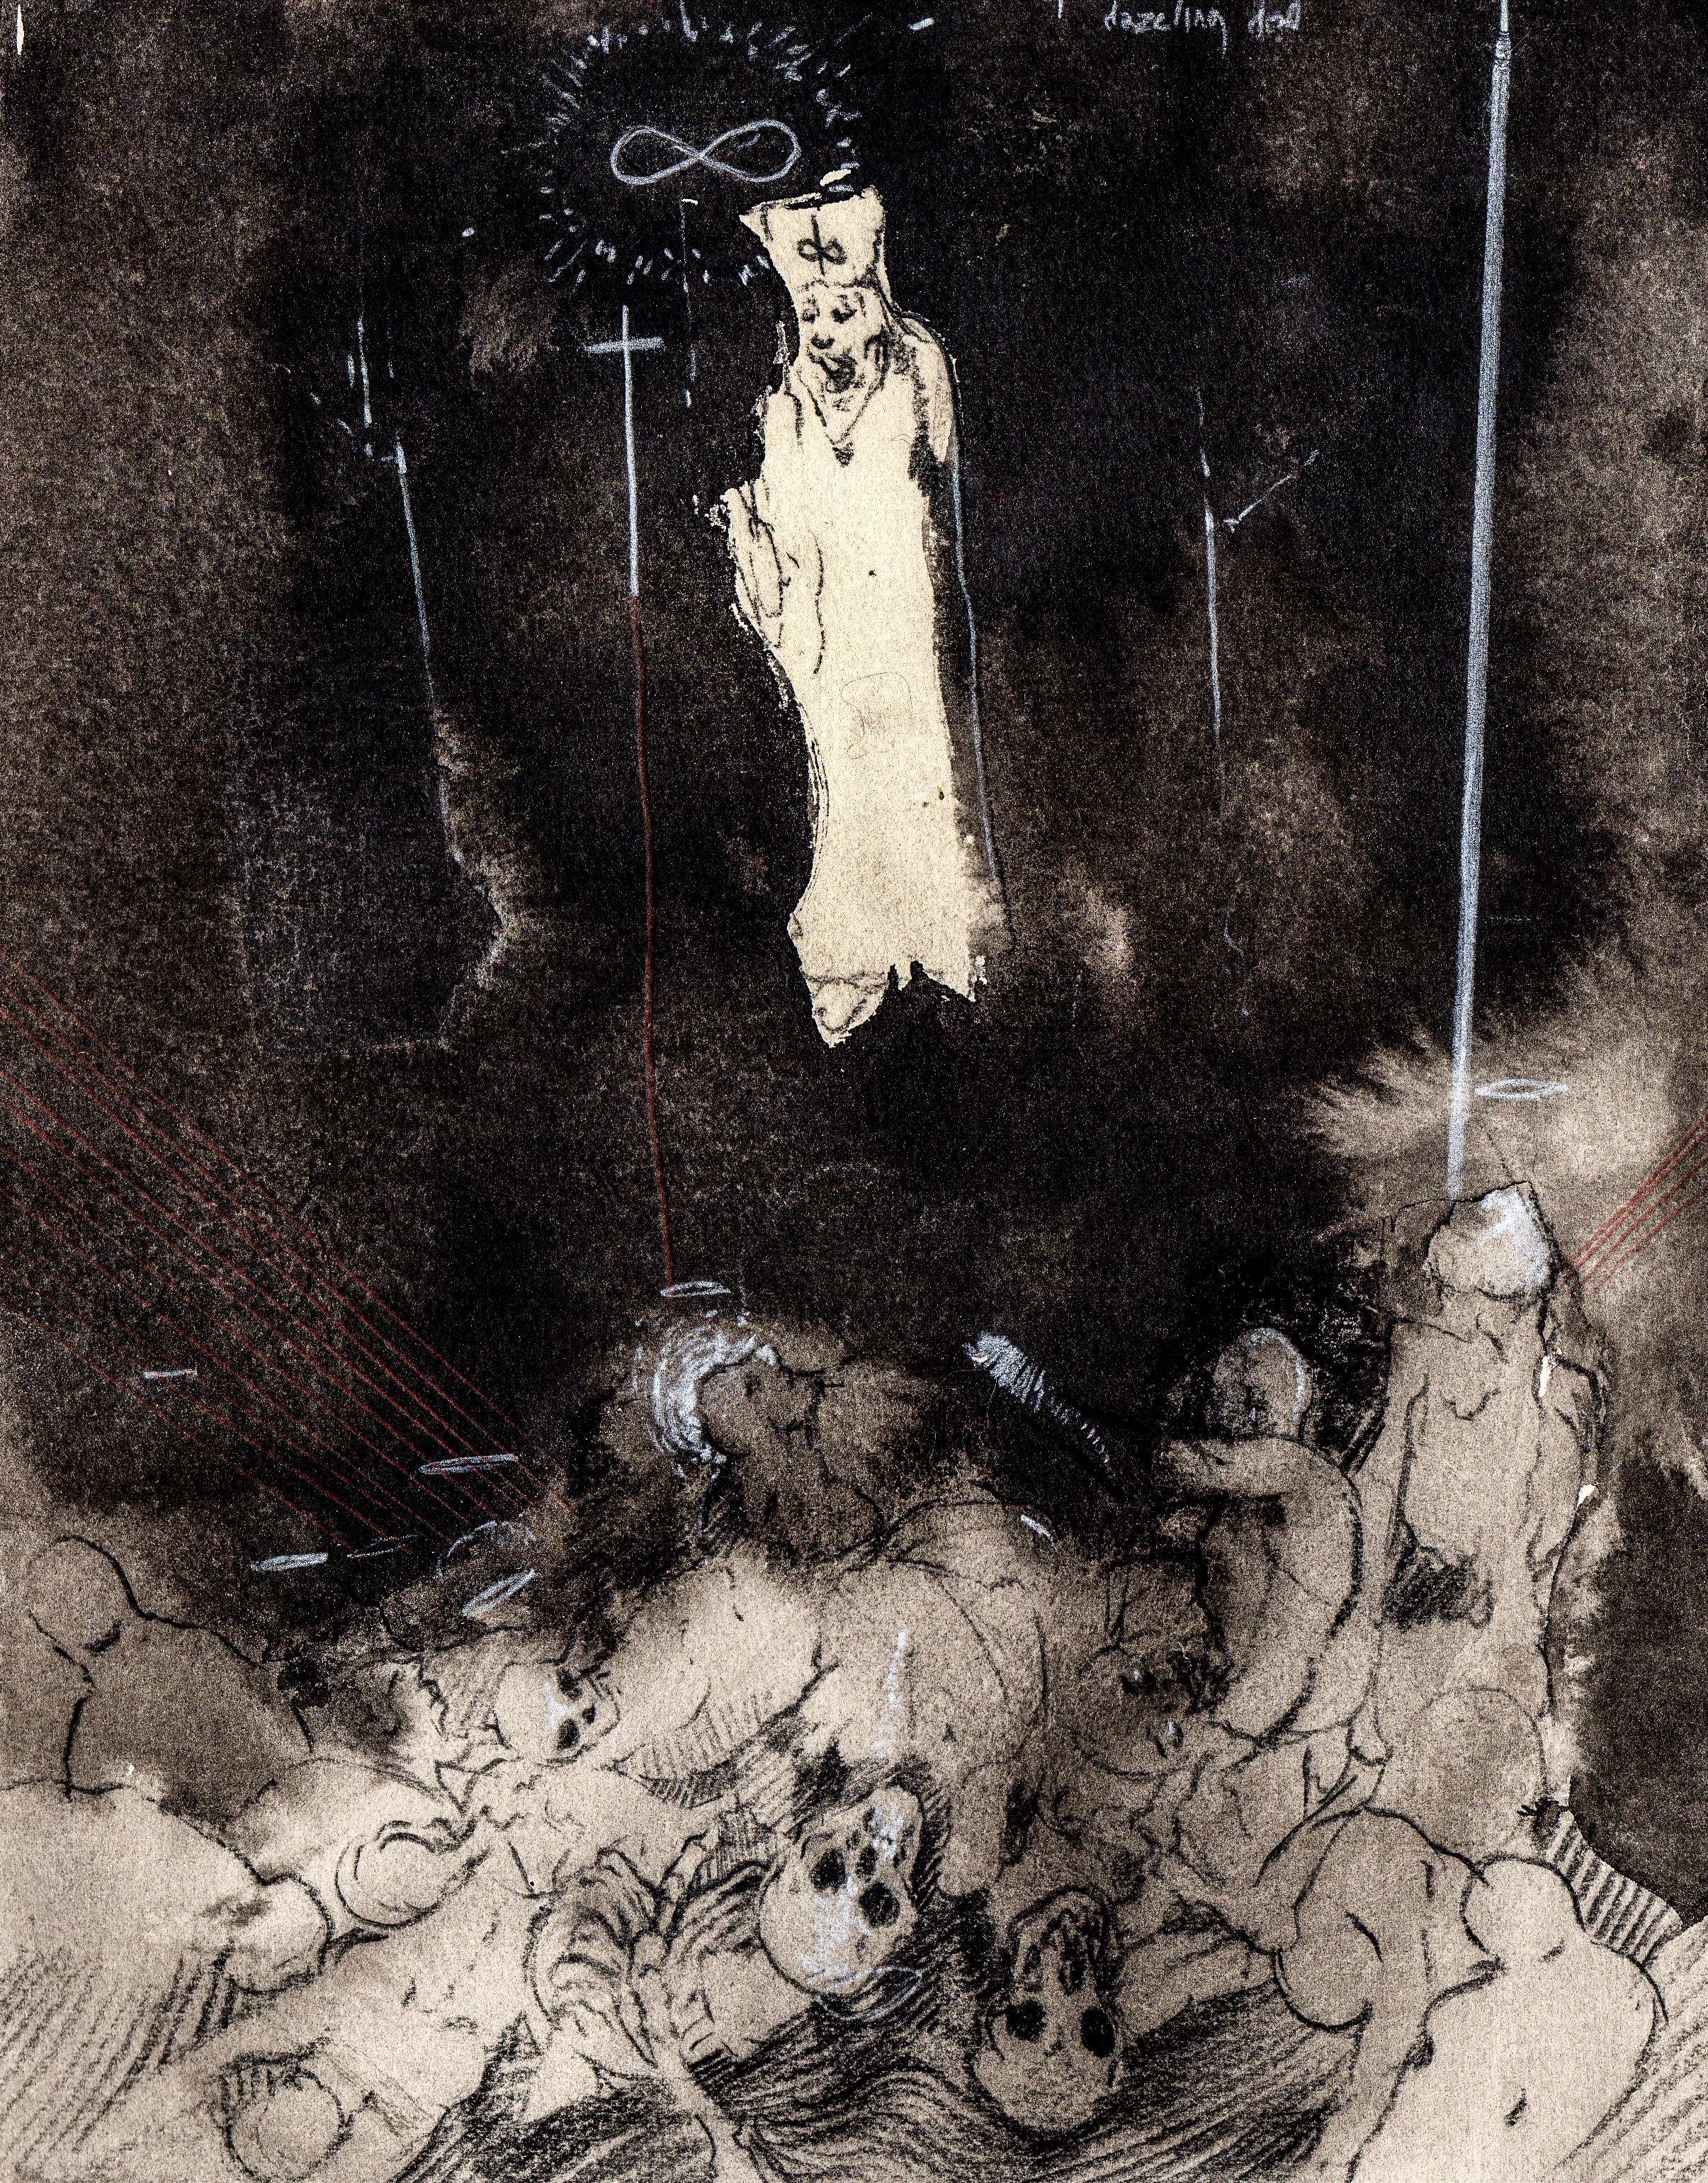 They have sent me in search for the dazzling dead  . 2013. 12 x 13 inches. Ink wash on paper.